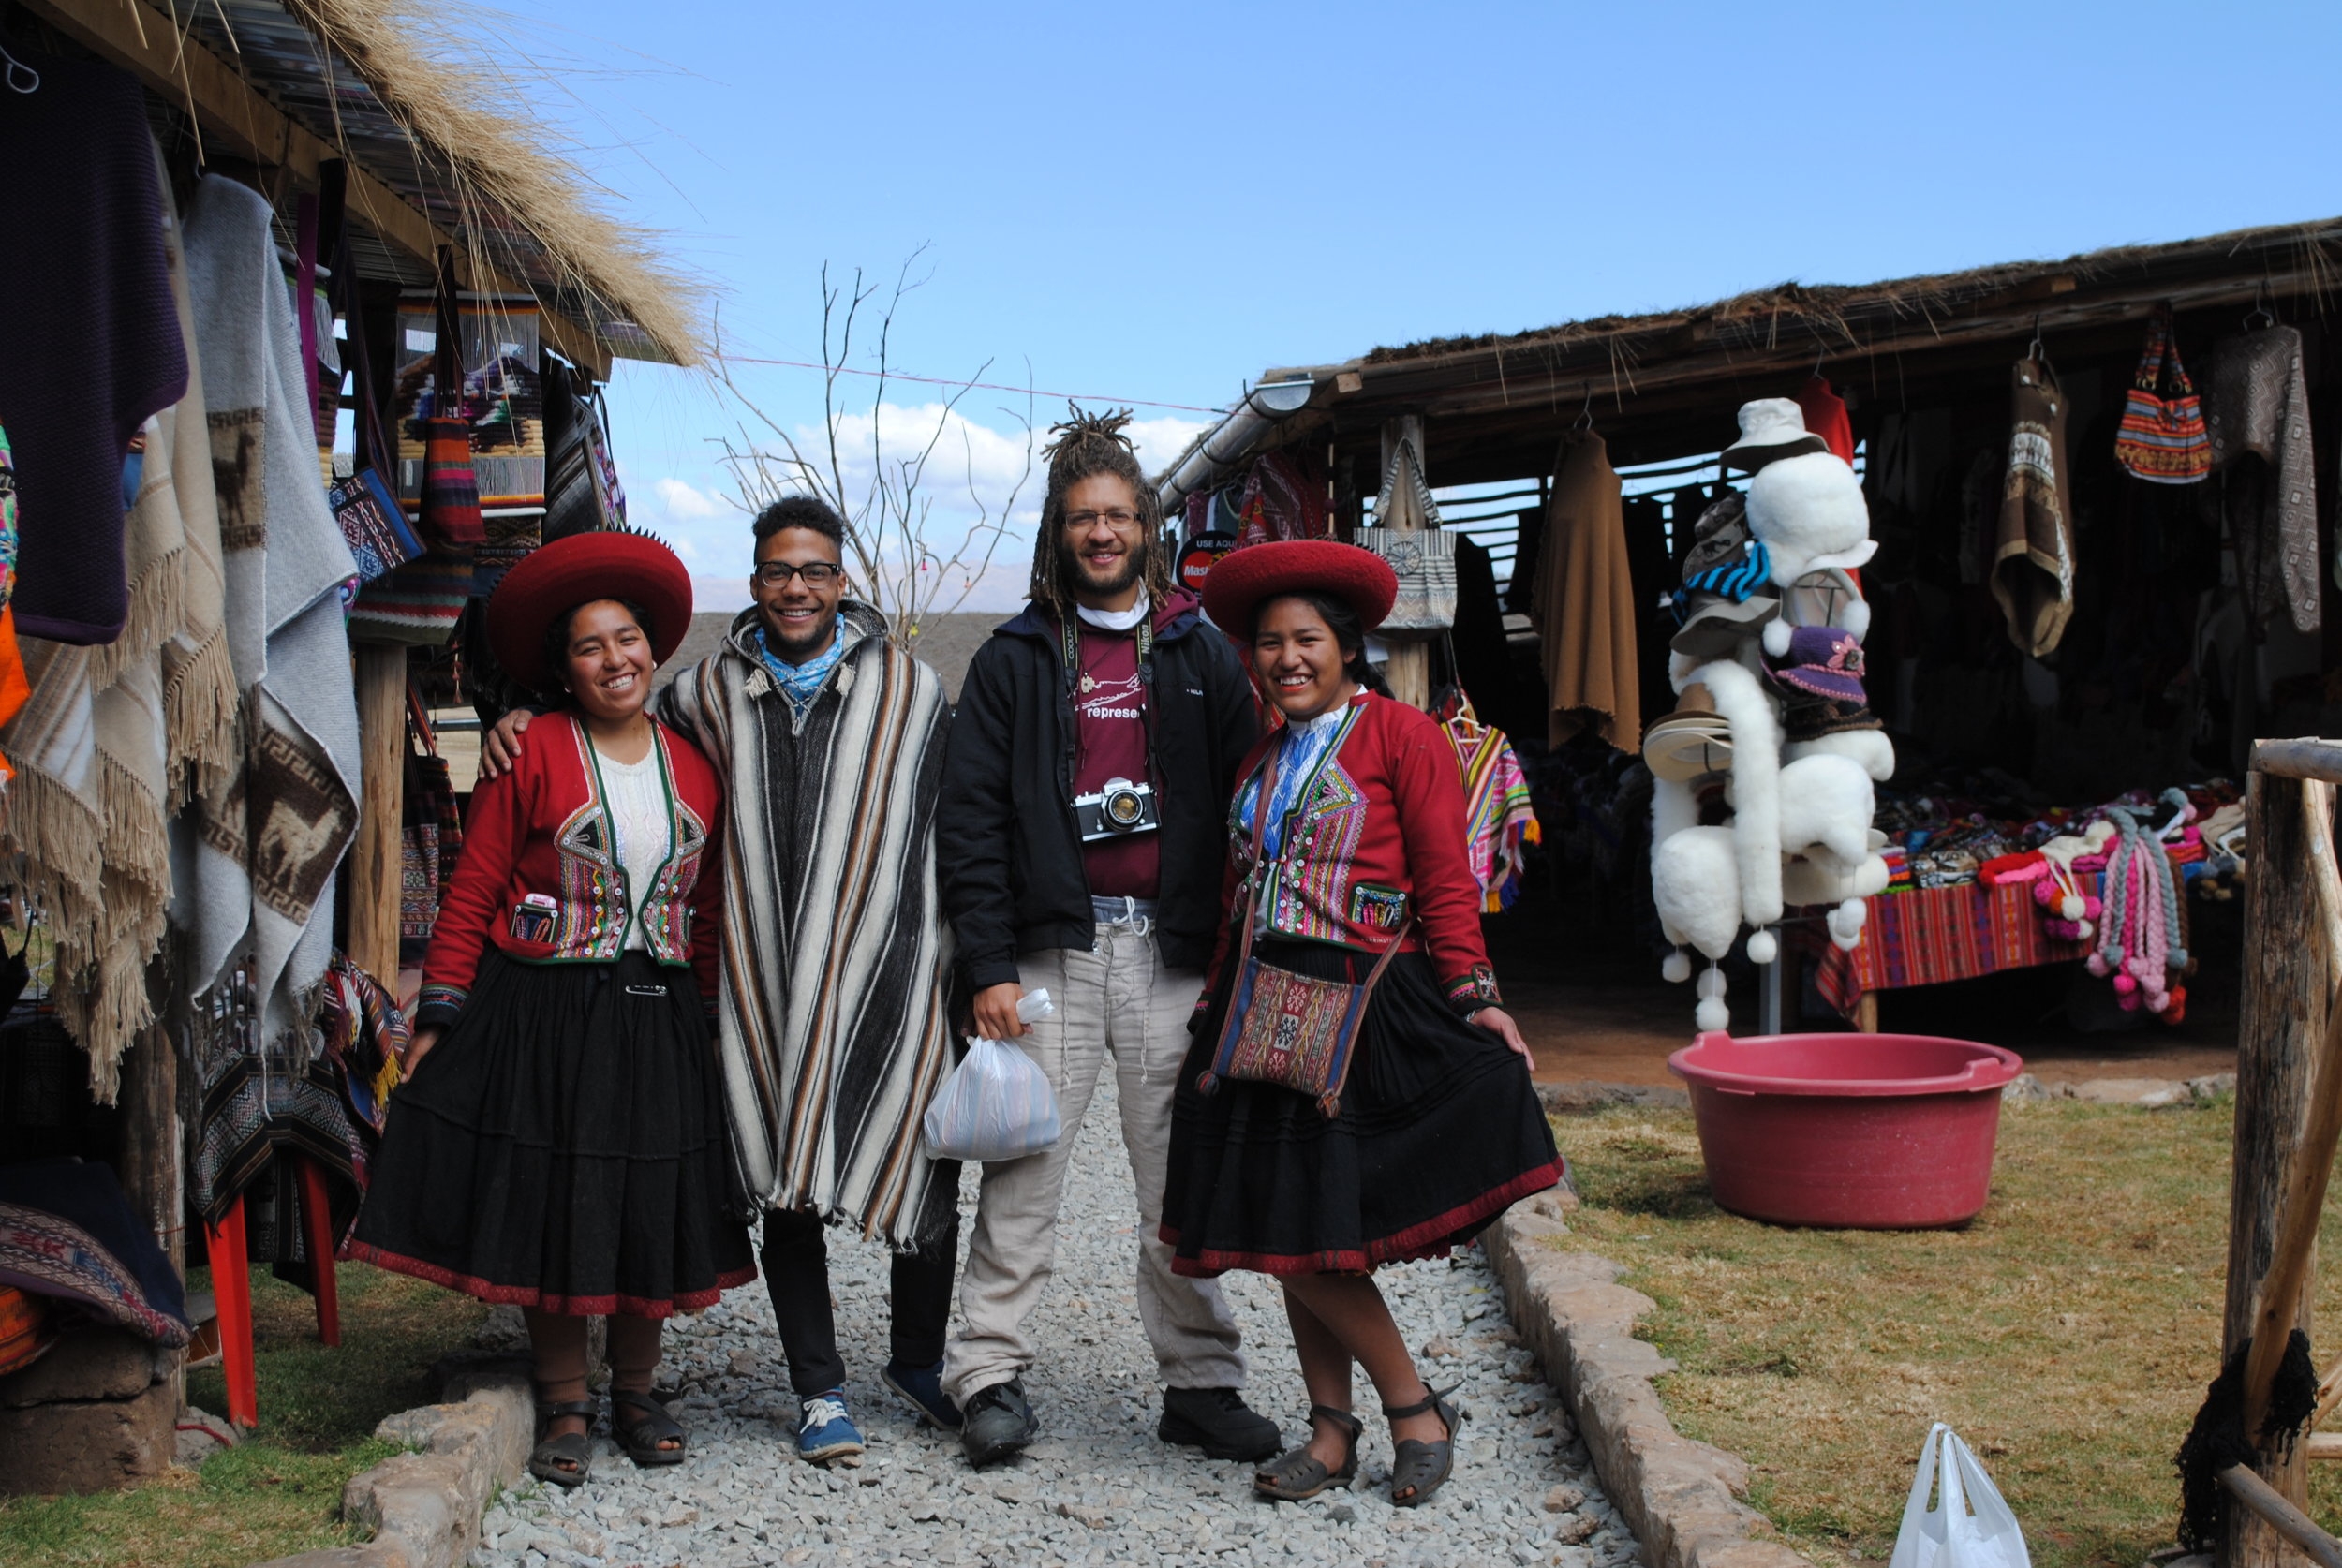 My younger brother and me making new friends in Peru - looks like a family photo.